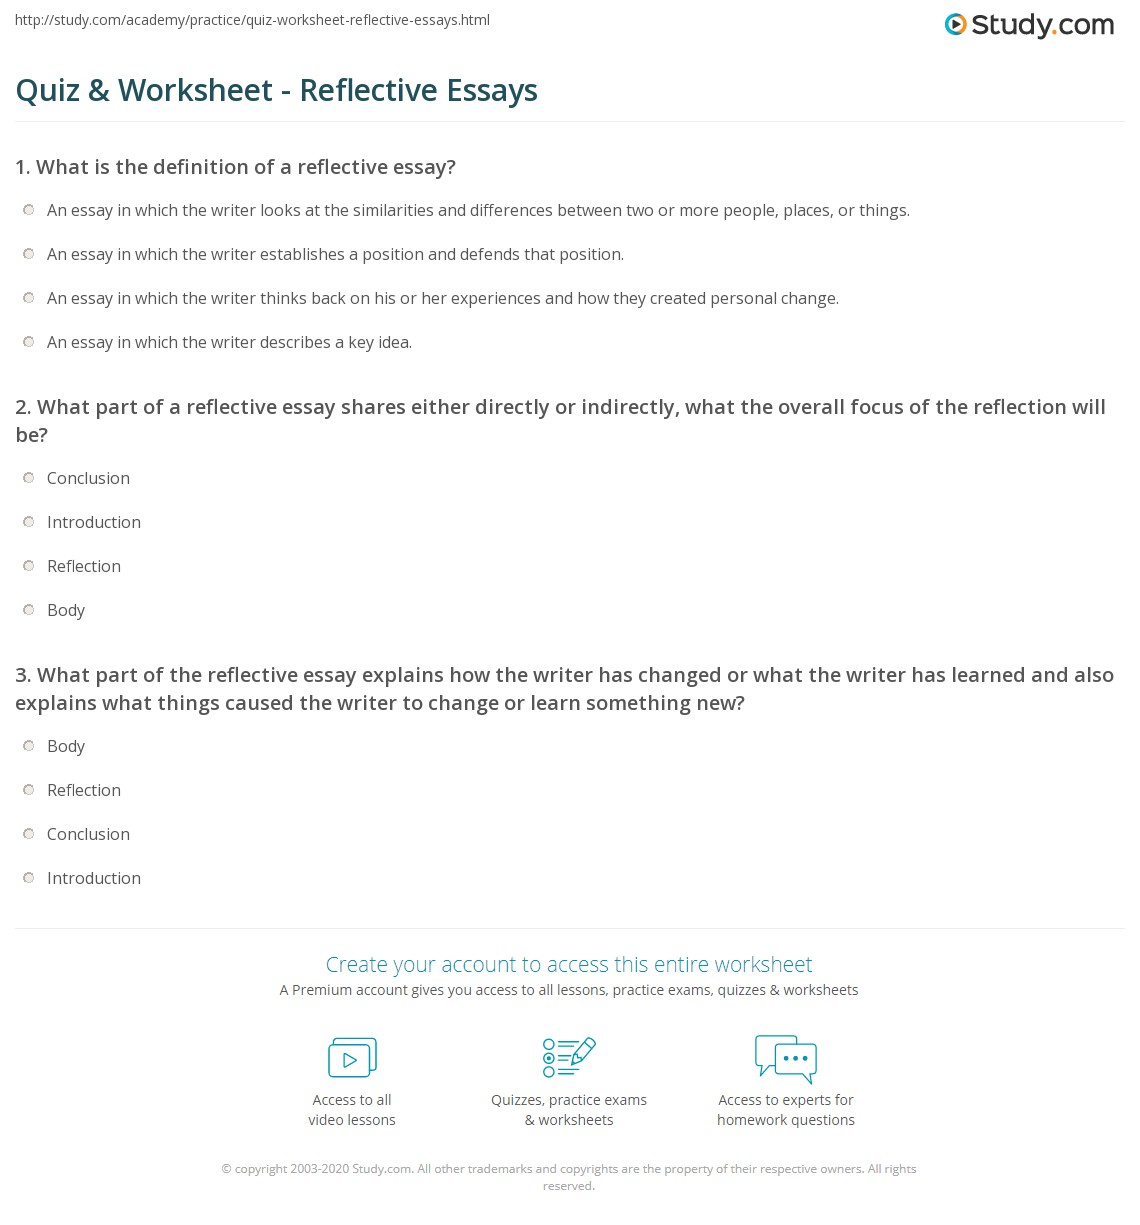 quiz worksheet reflective essays com what part of a reflective essay shares either directly or indirectly what the overall focus of the reflection will be conclusion introduction